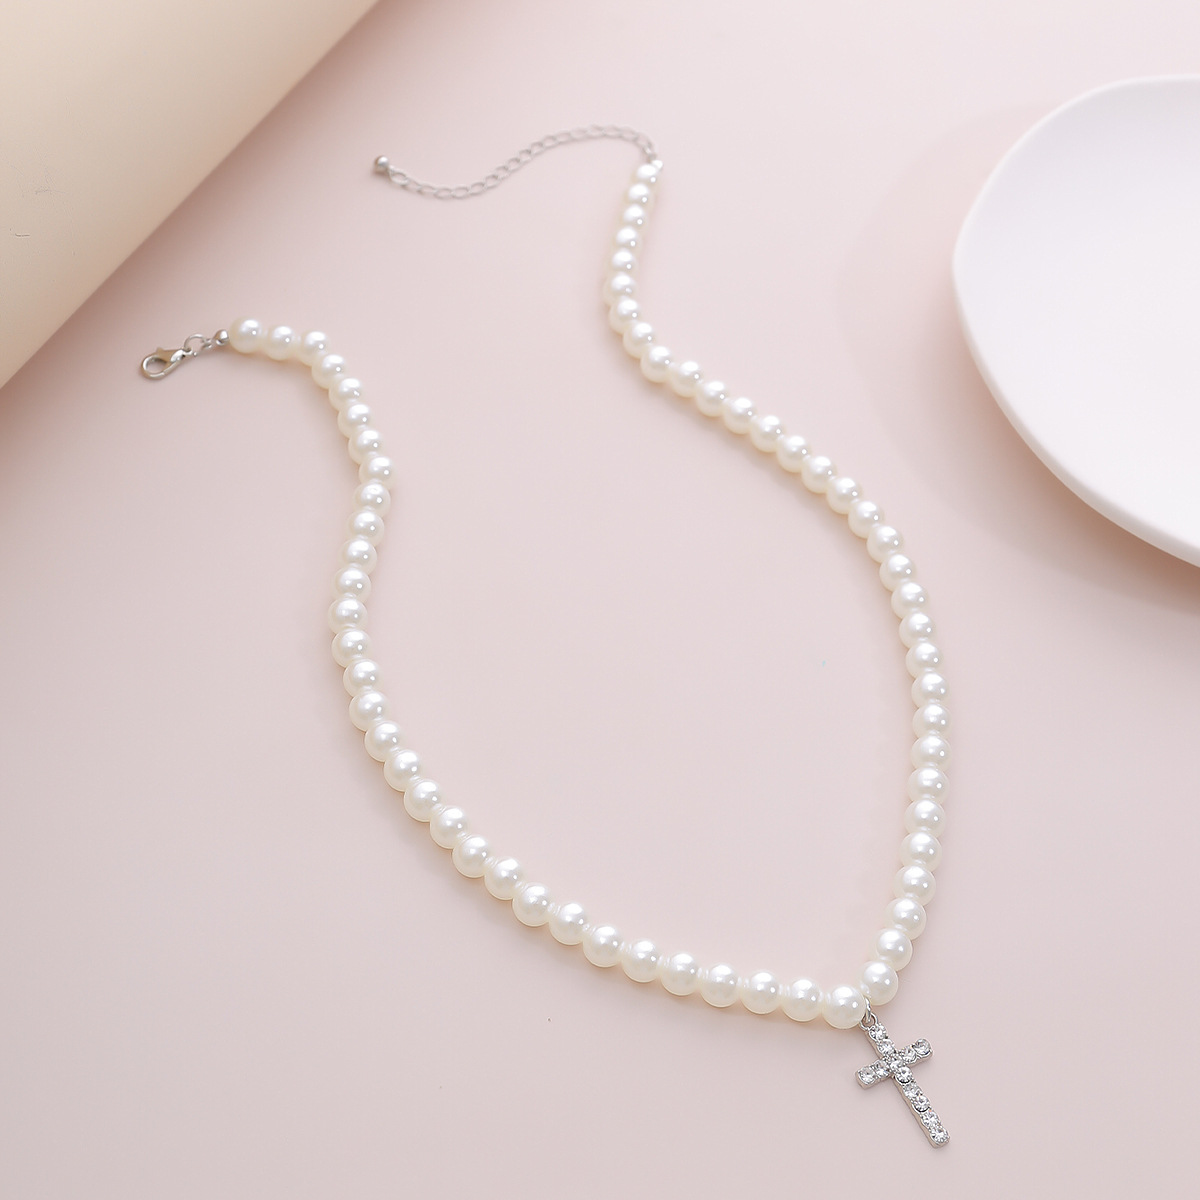 Fashion simple pearl clavicle retro diamond cross pendant necklace for women NHXR249910